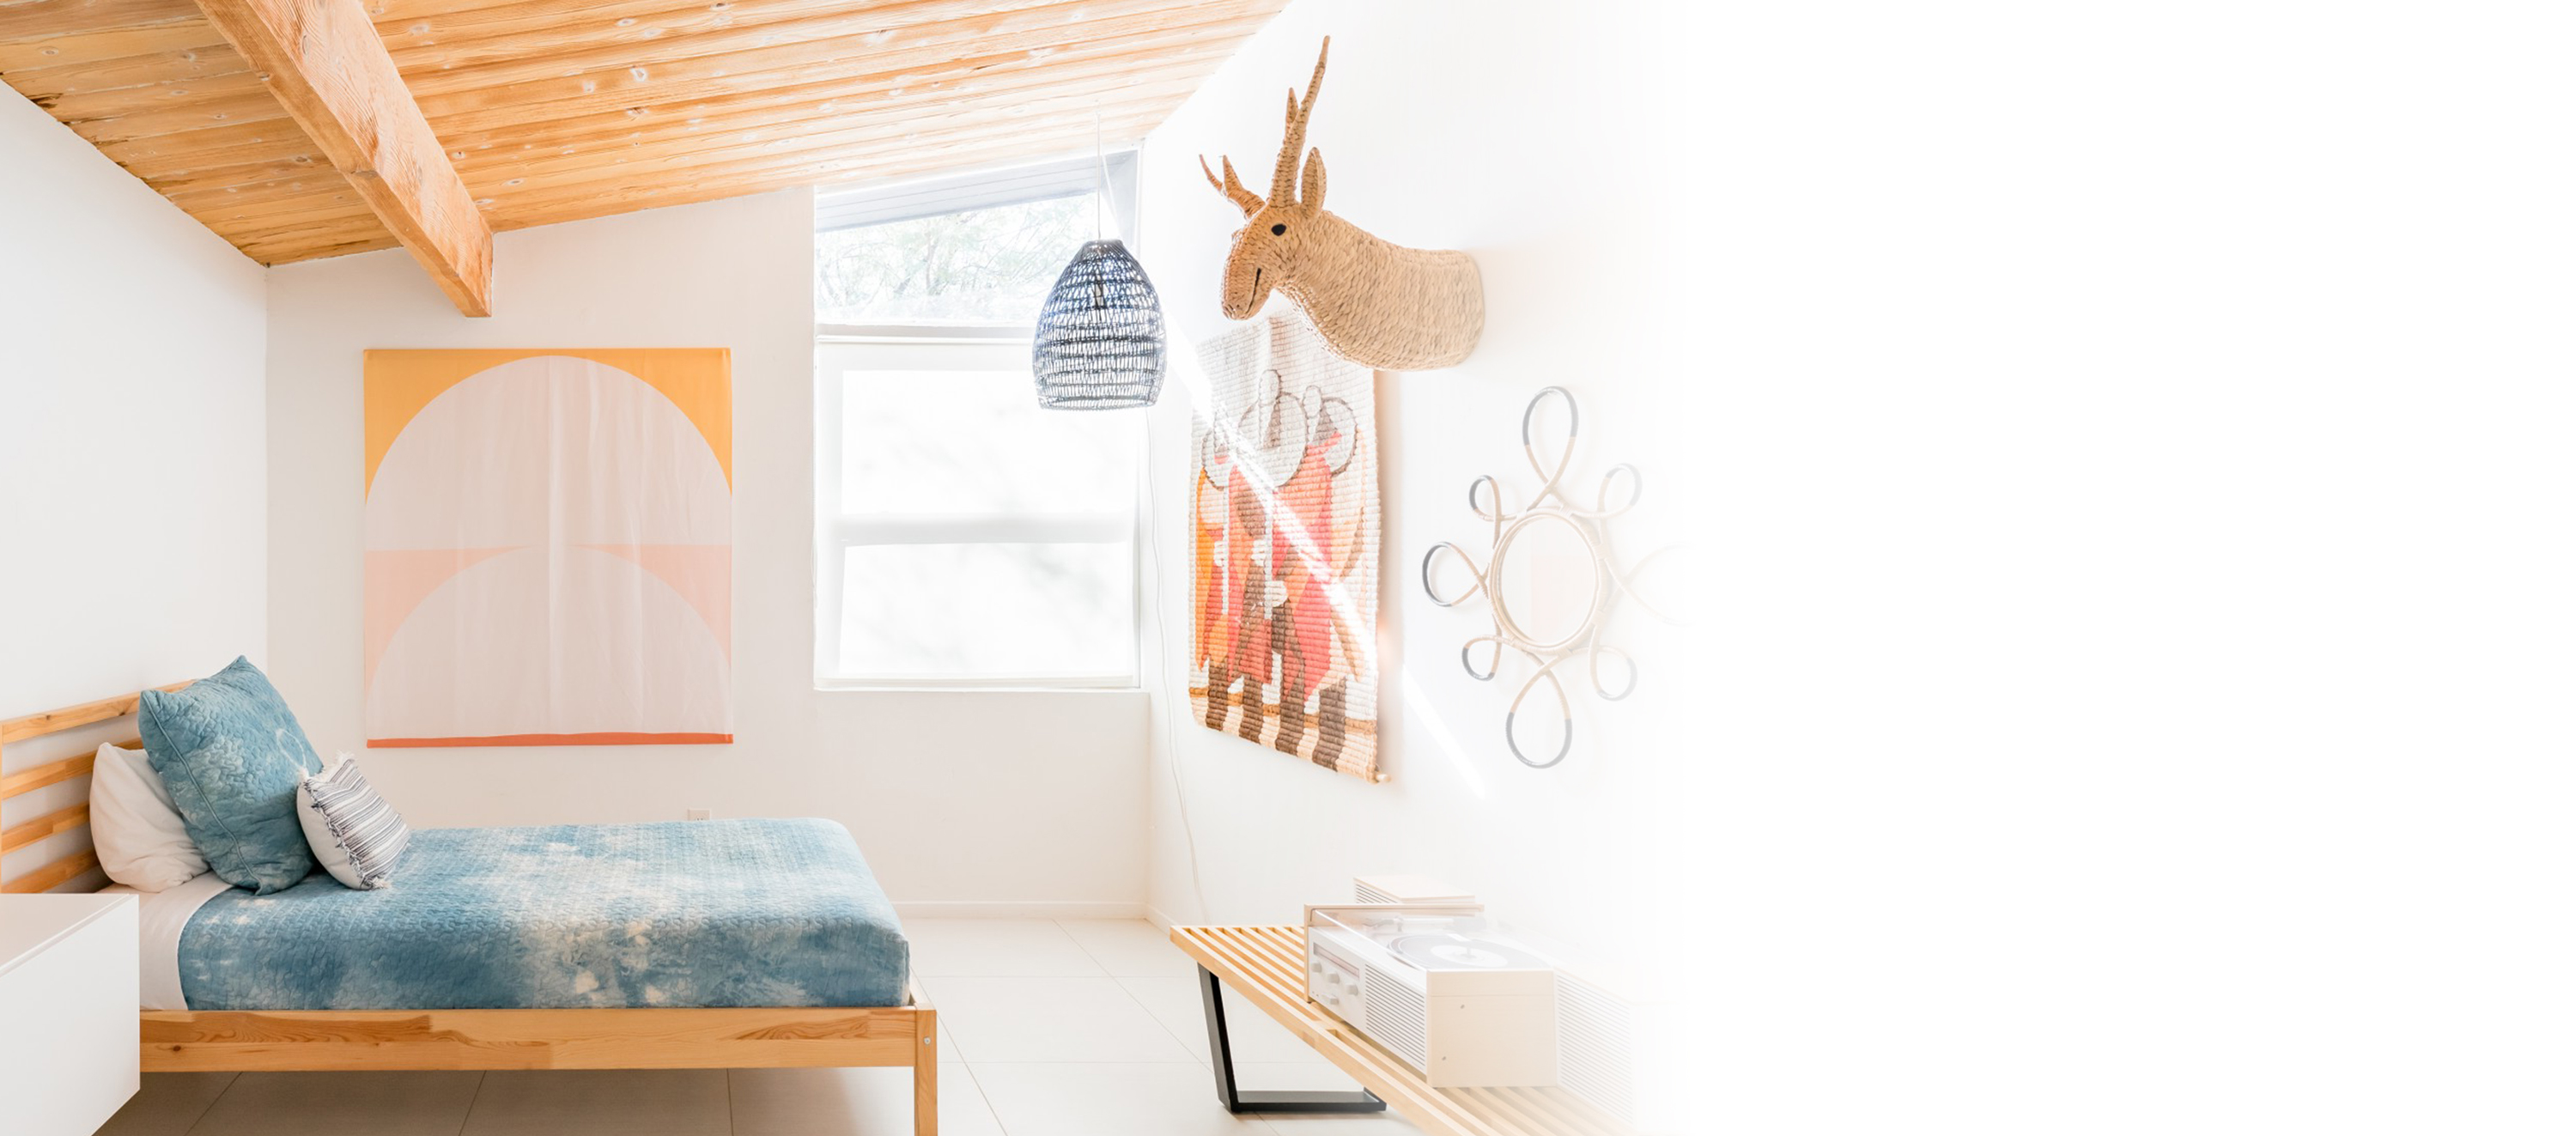 muse airbnb div background 1.13.2019